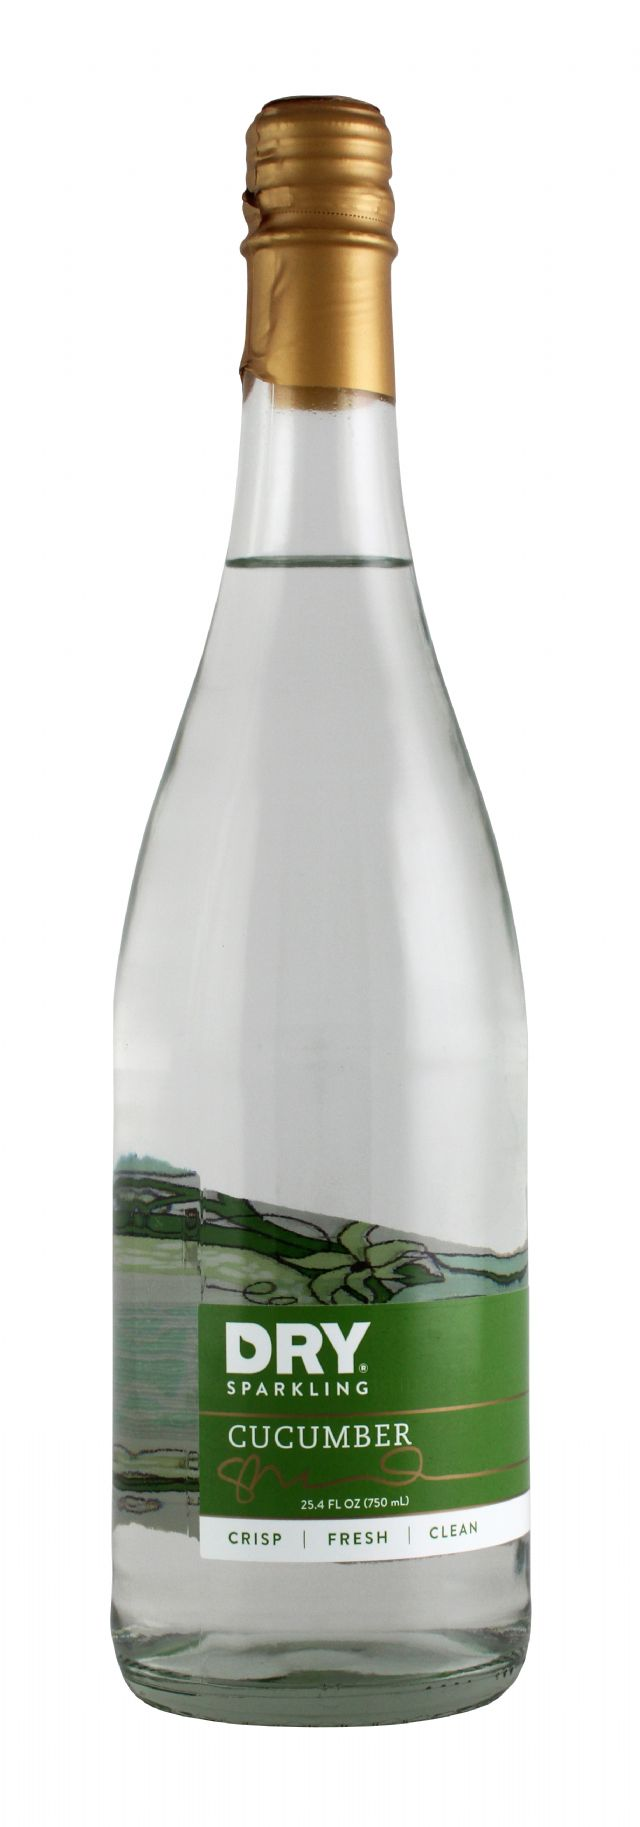 DRY Sparkling: Dry Cucumber Front